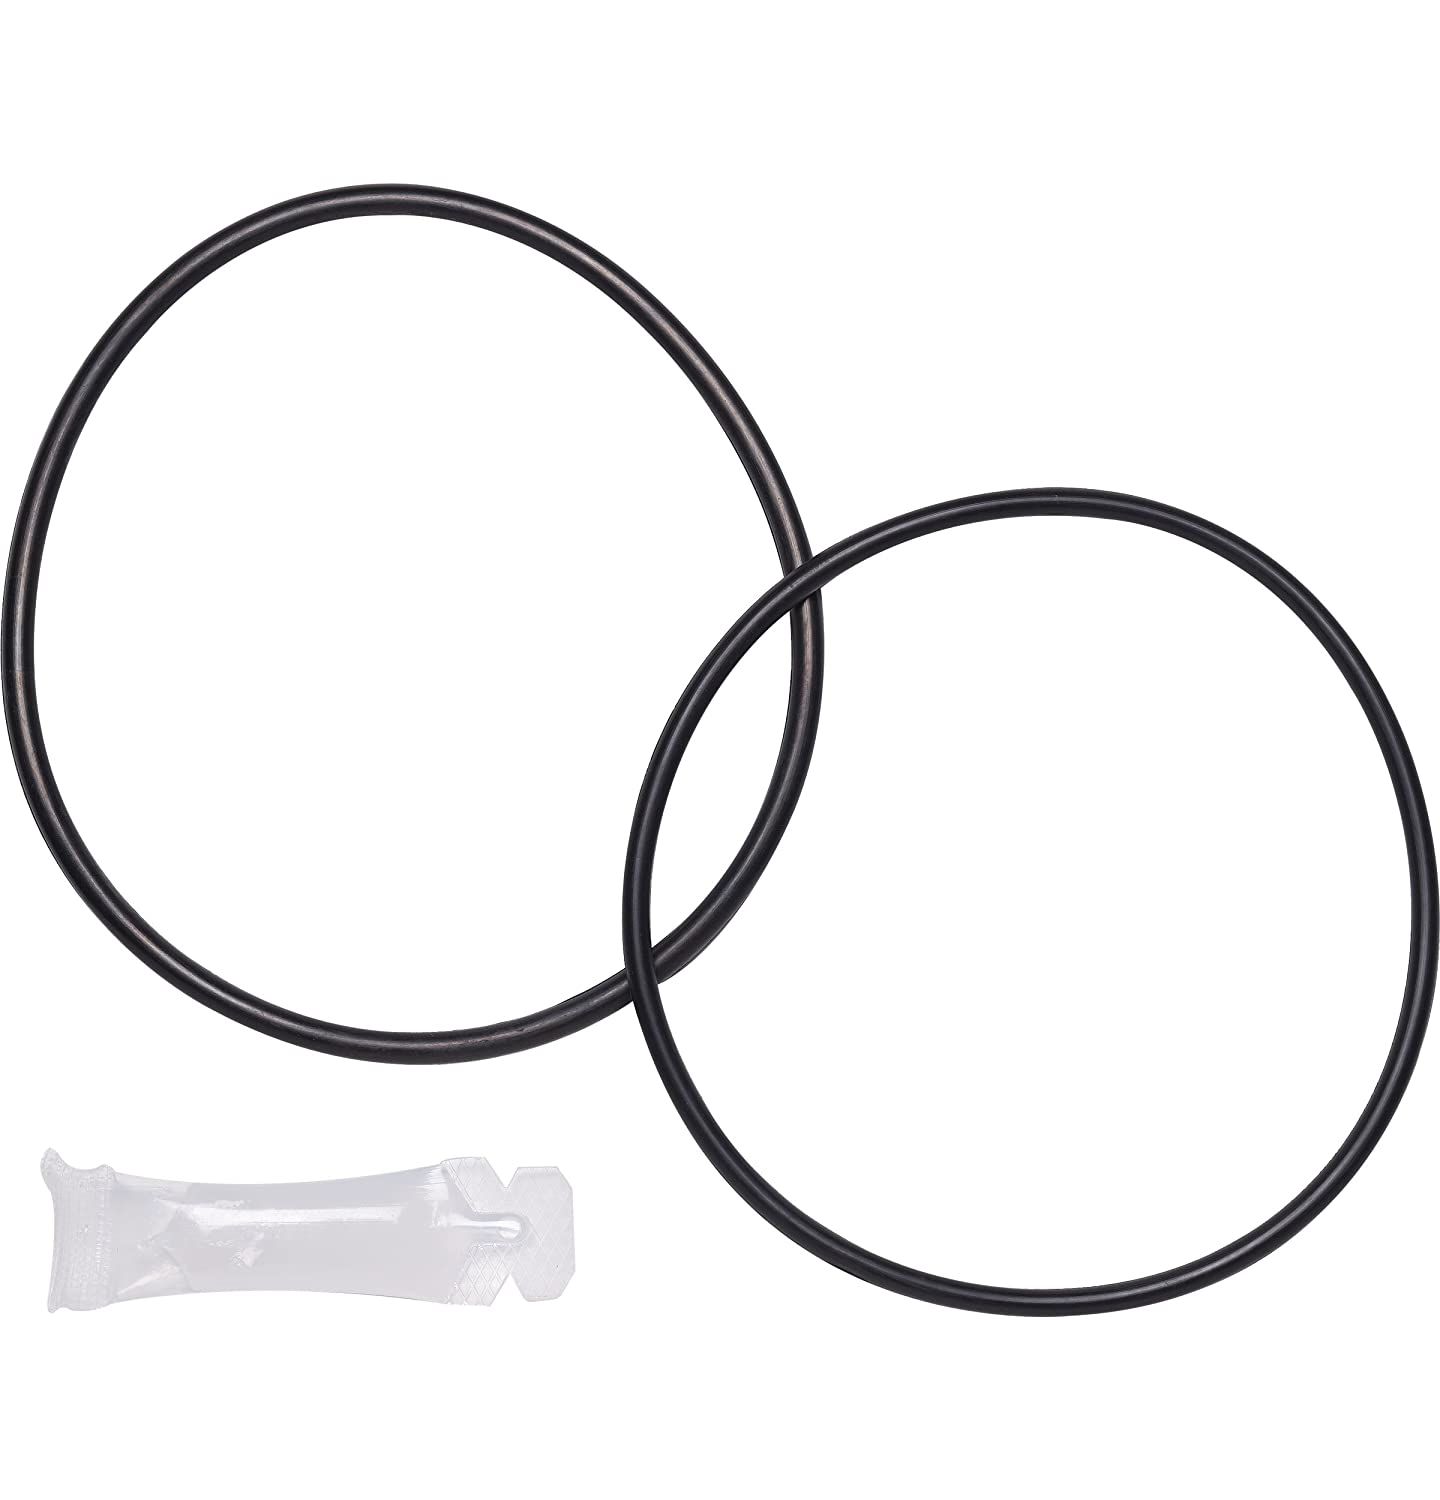 General Electric UCRING Replacement O-Ring